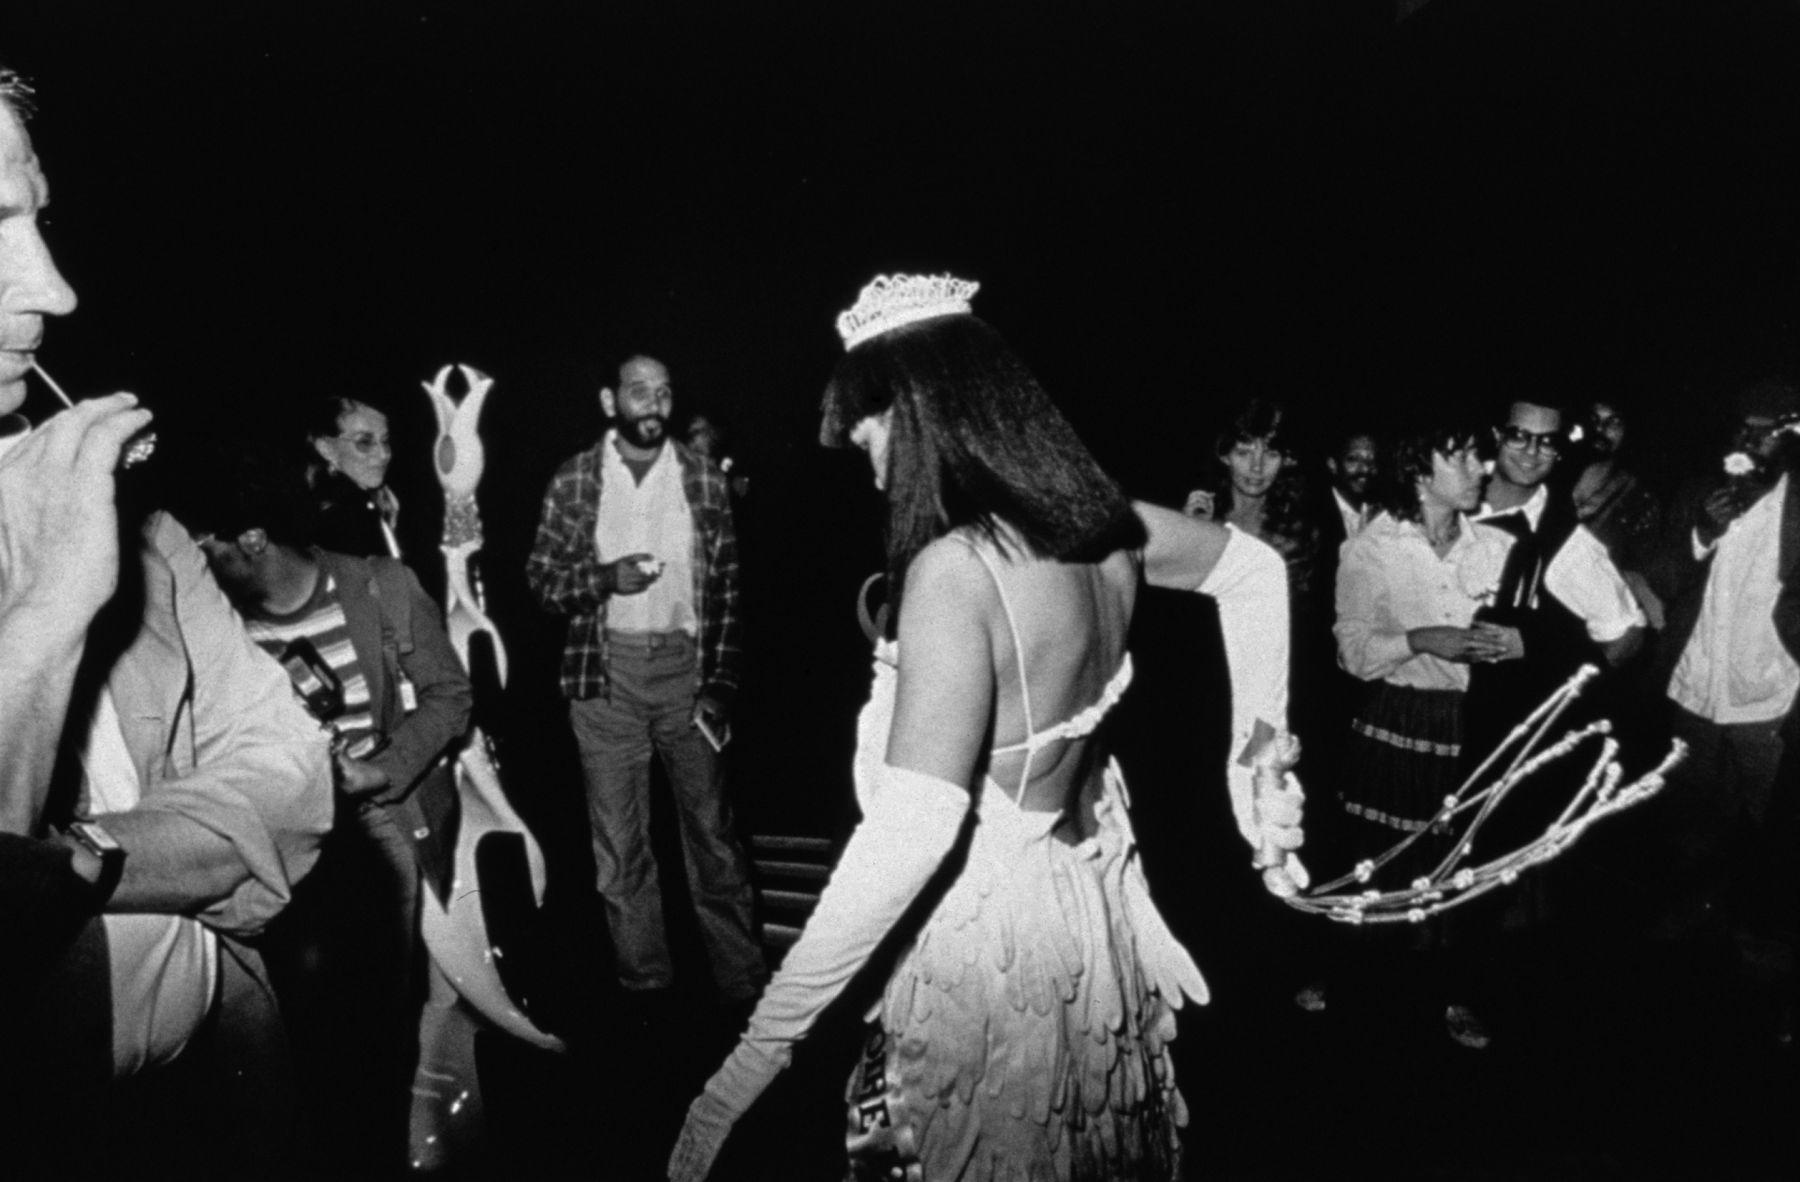 Untitled (Crowd watches Mlle Bourgeoise Noire whipping herself), 1980-83/2009